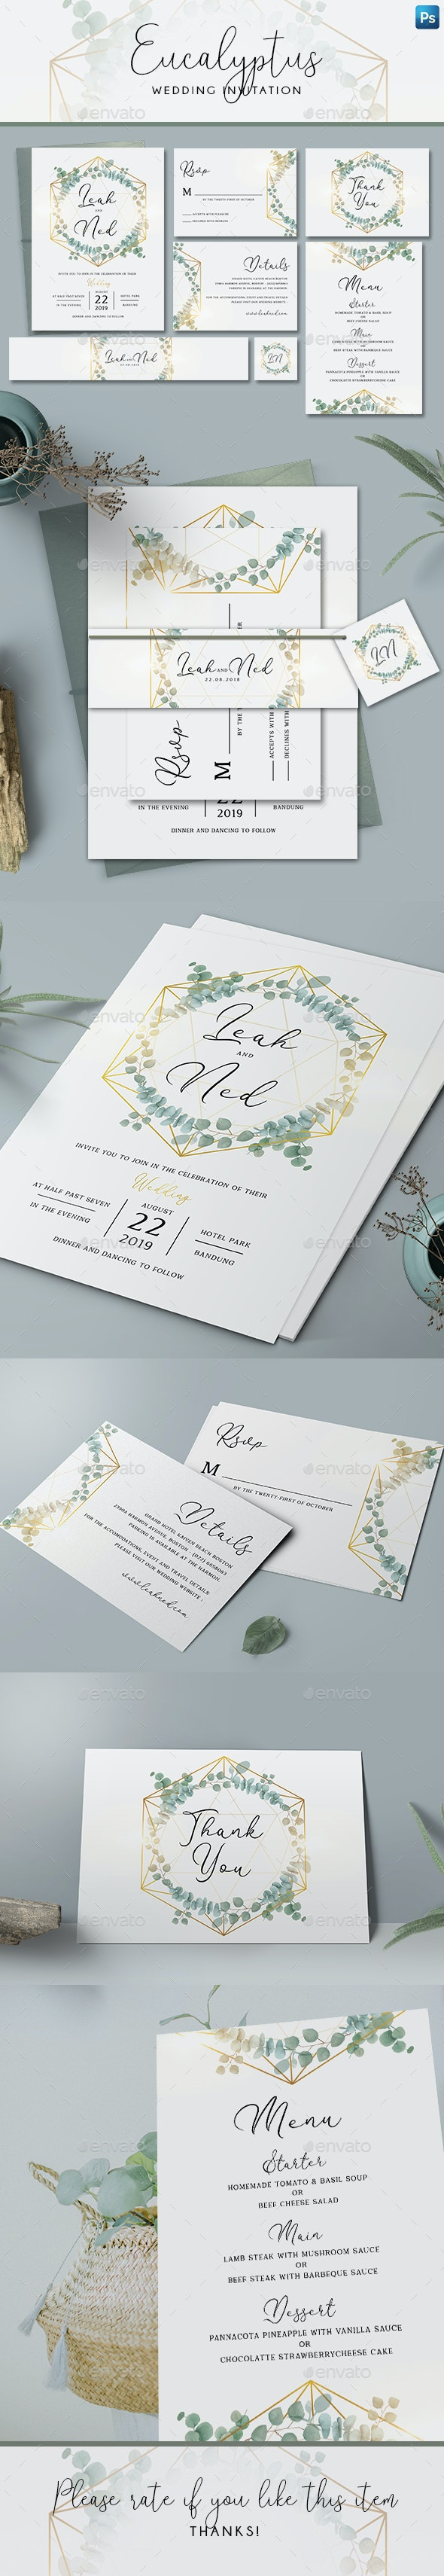 Geometric Eucalyptus Wedding Invitation - Weddings Cards & Invites